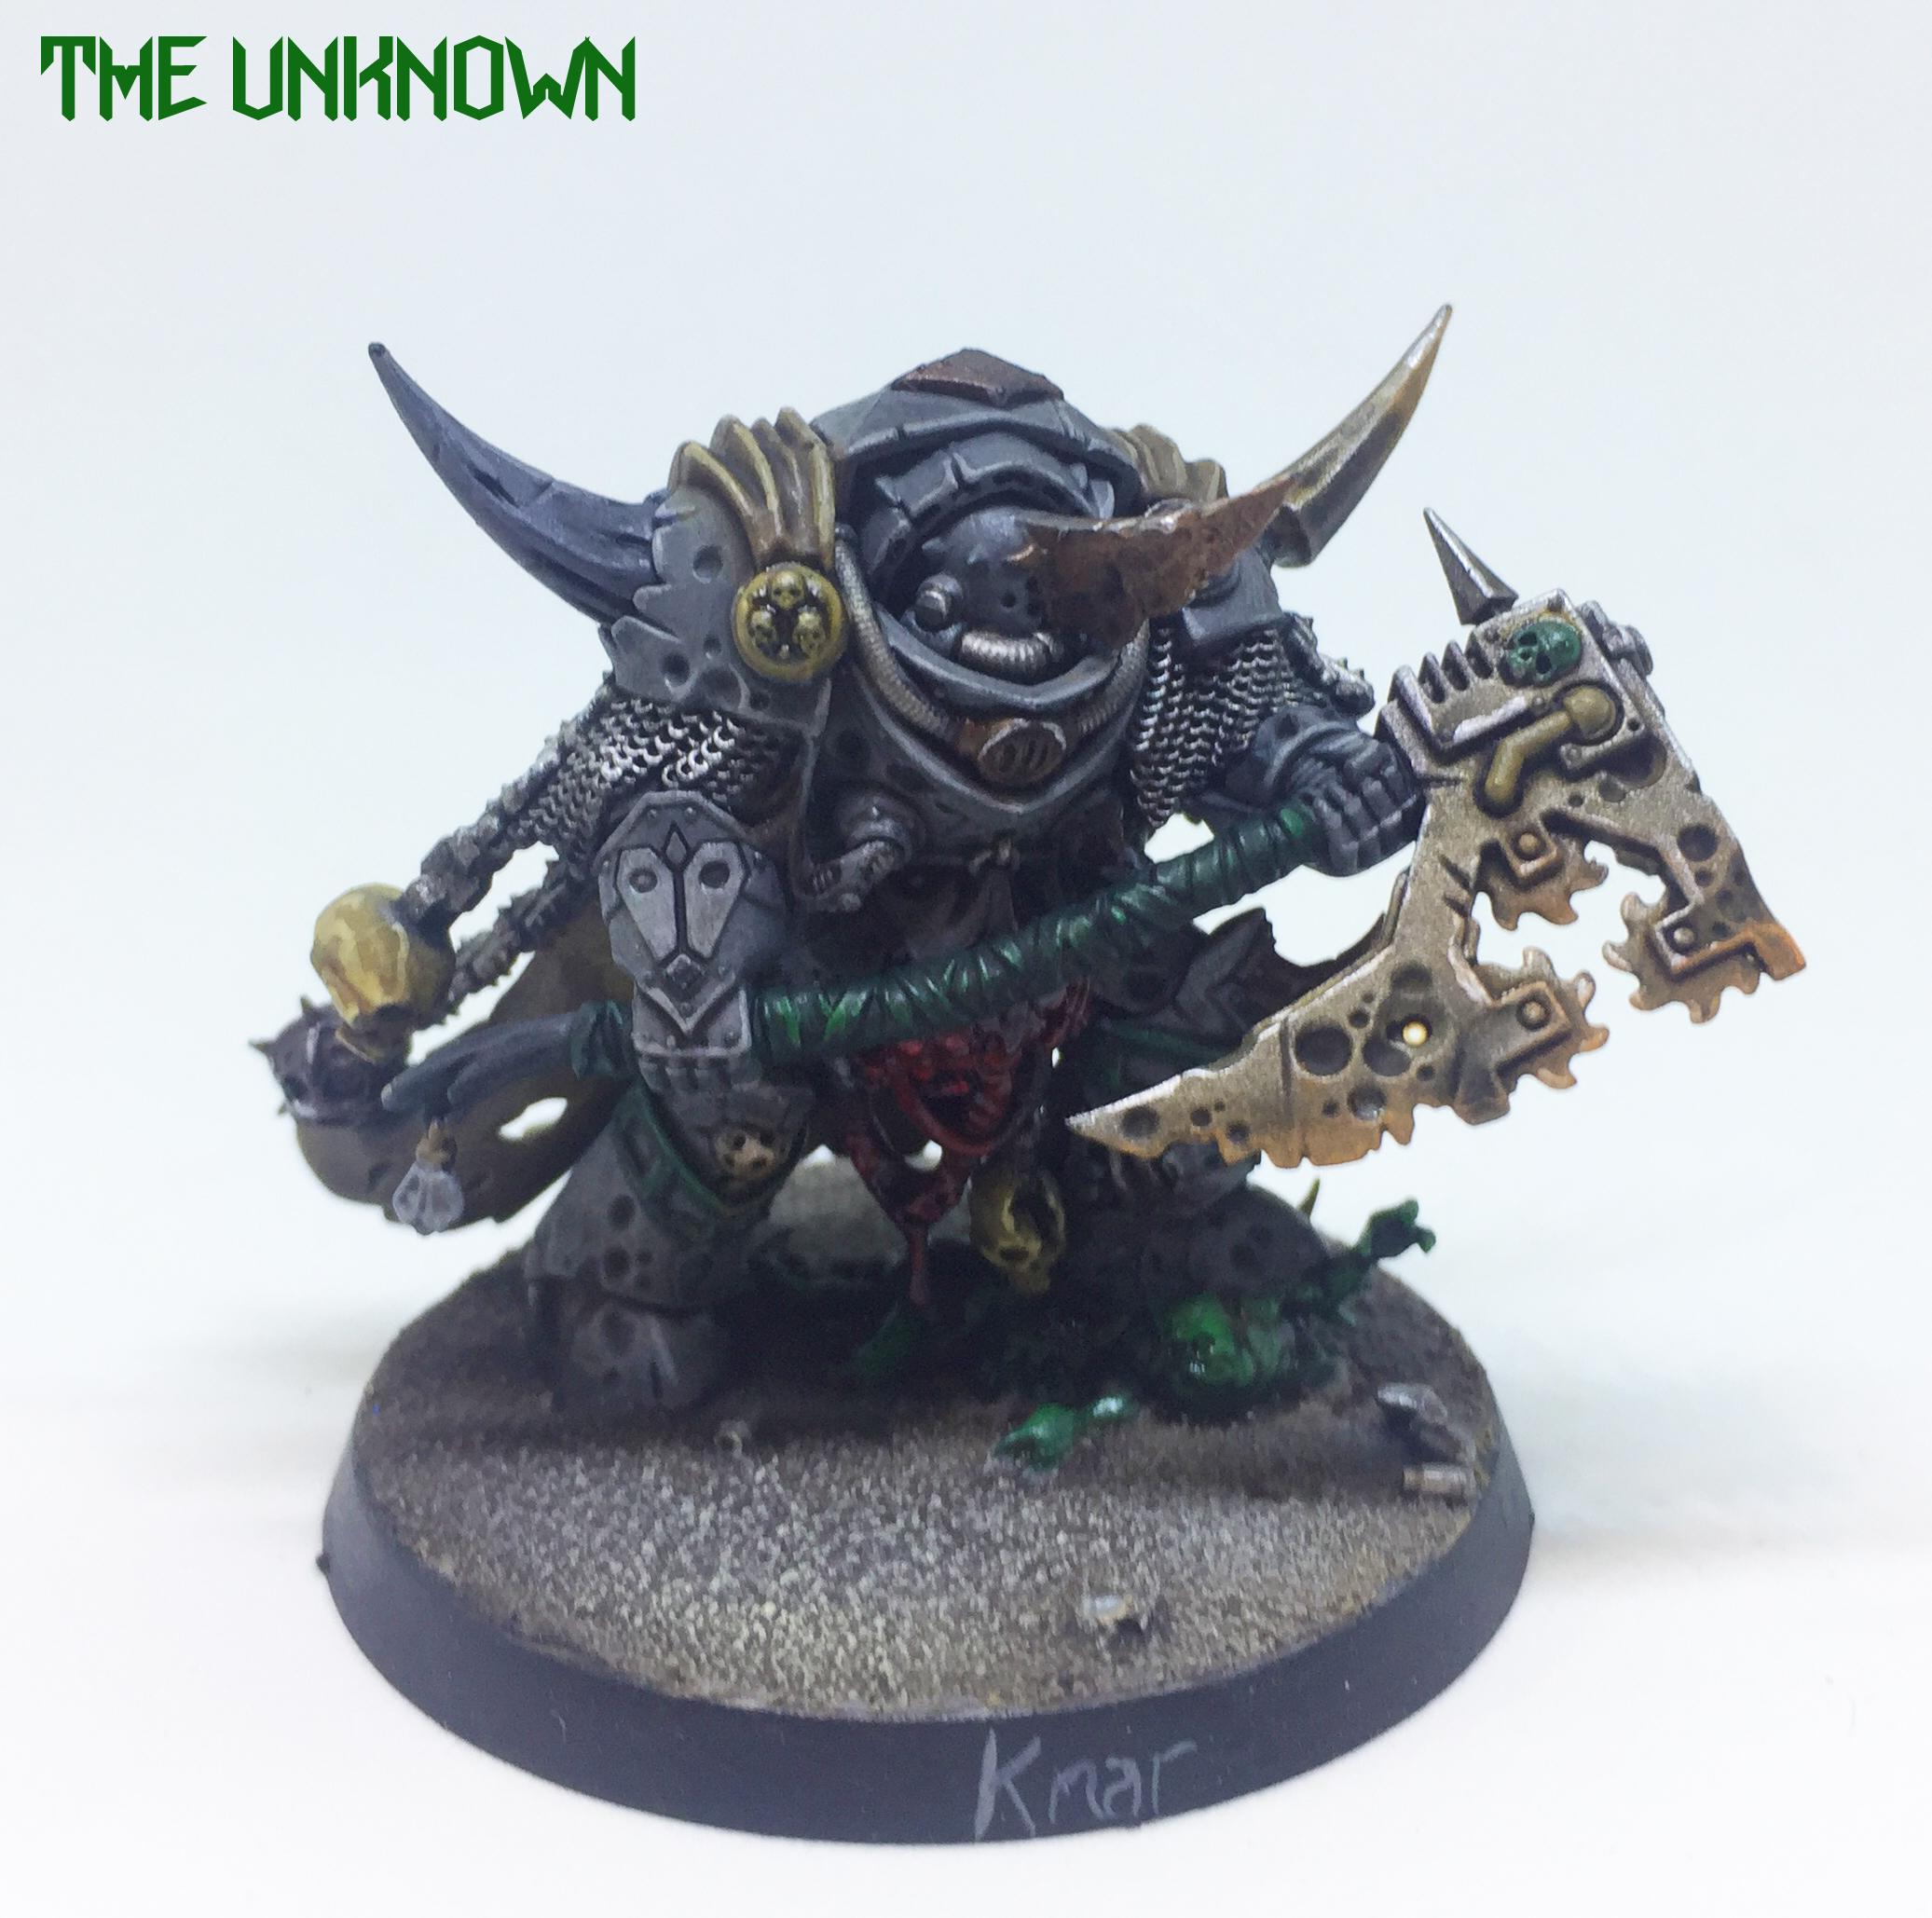 Chaos Lord, Chaos Space Marines, Dark Imperium, Death Guard, Lord Of Contagion, Nurgle, Terminator Armor, Warhammer 40,000